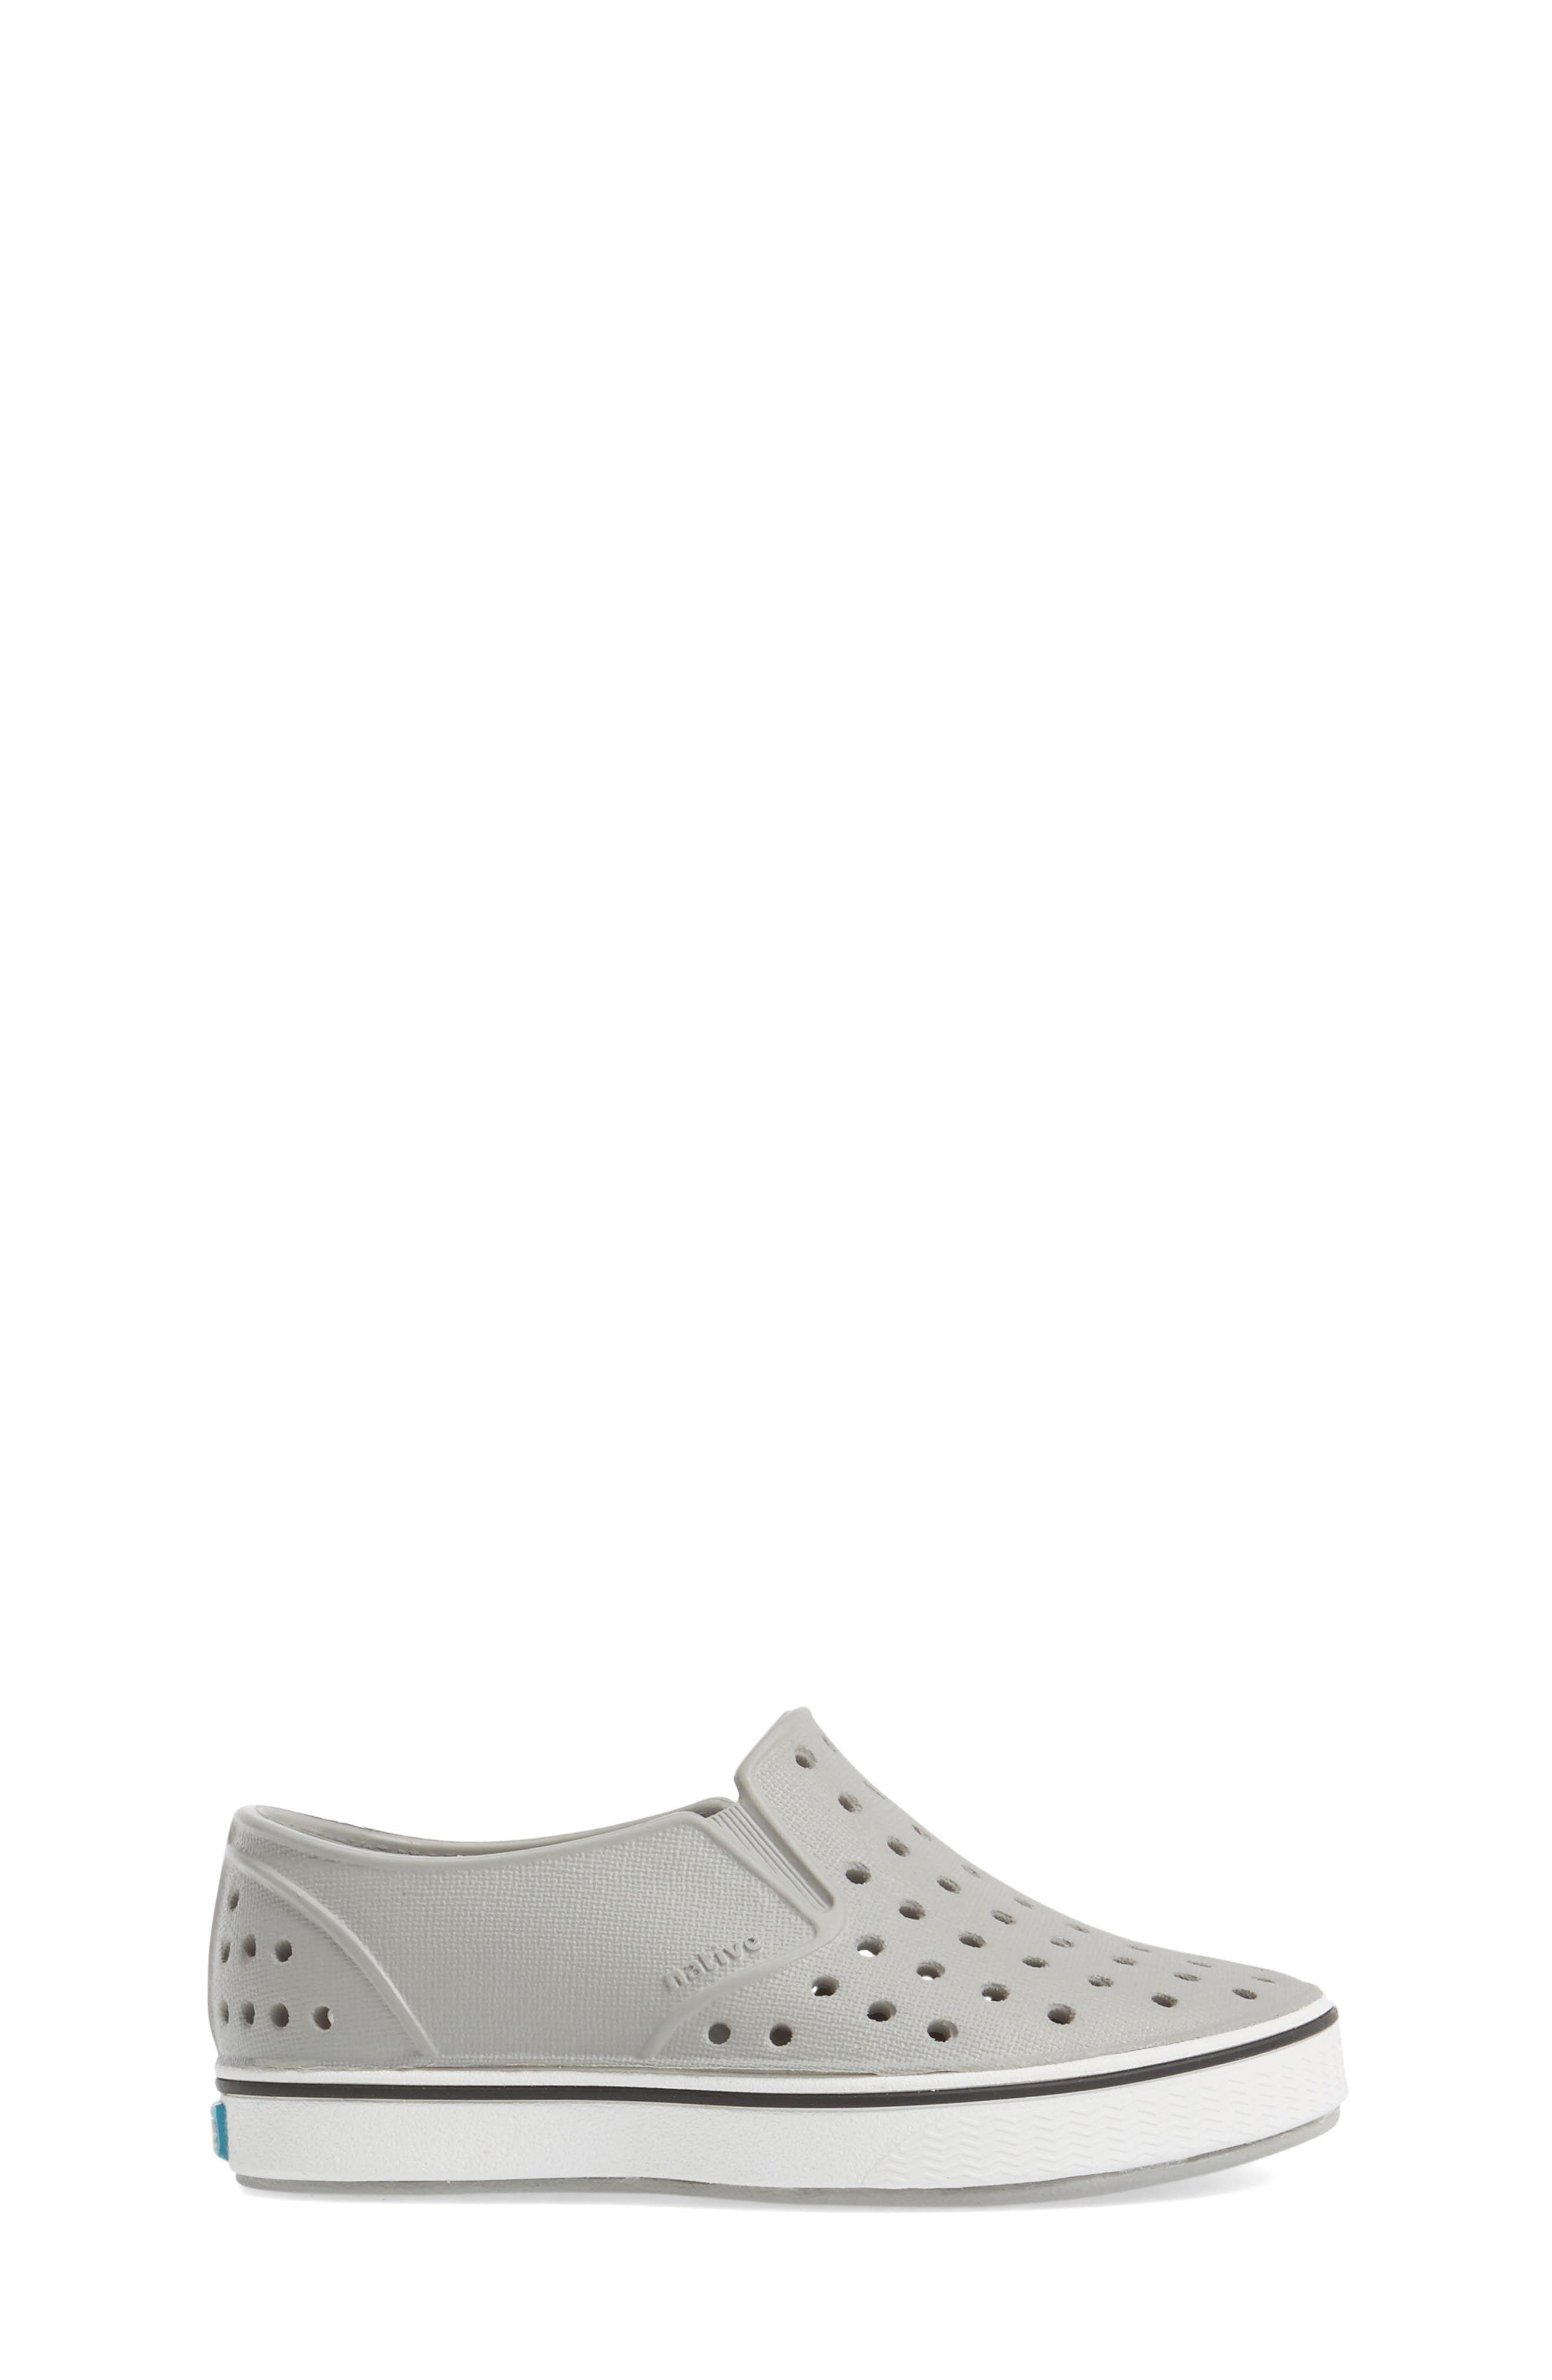 Miles Water Friendly Slip-On Sneaker,                             Alternate thumbnail 3, color,                             PIGEON GREY/ SHELL WHITE